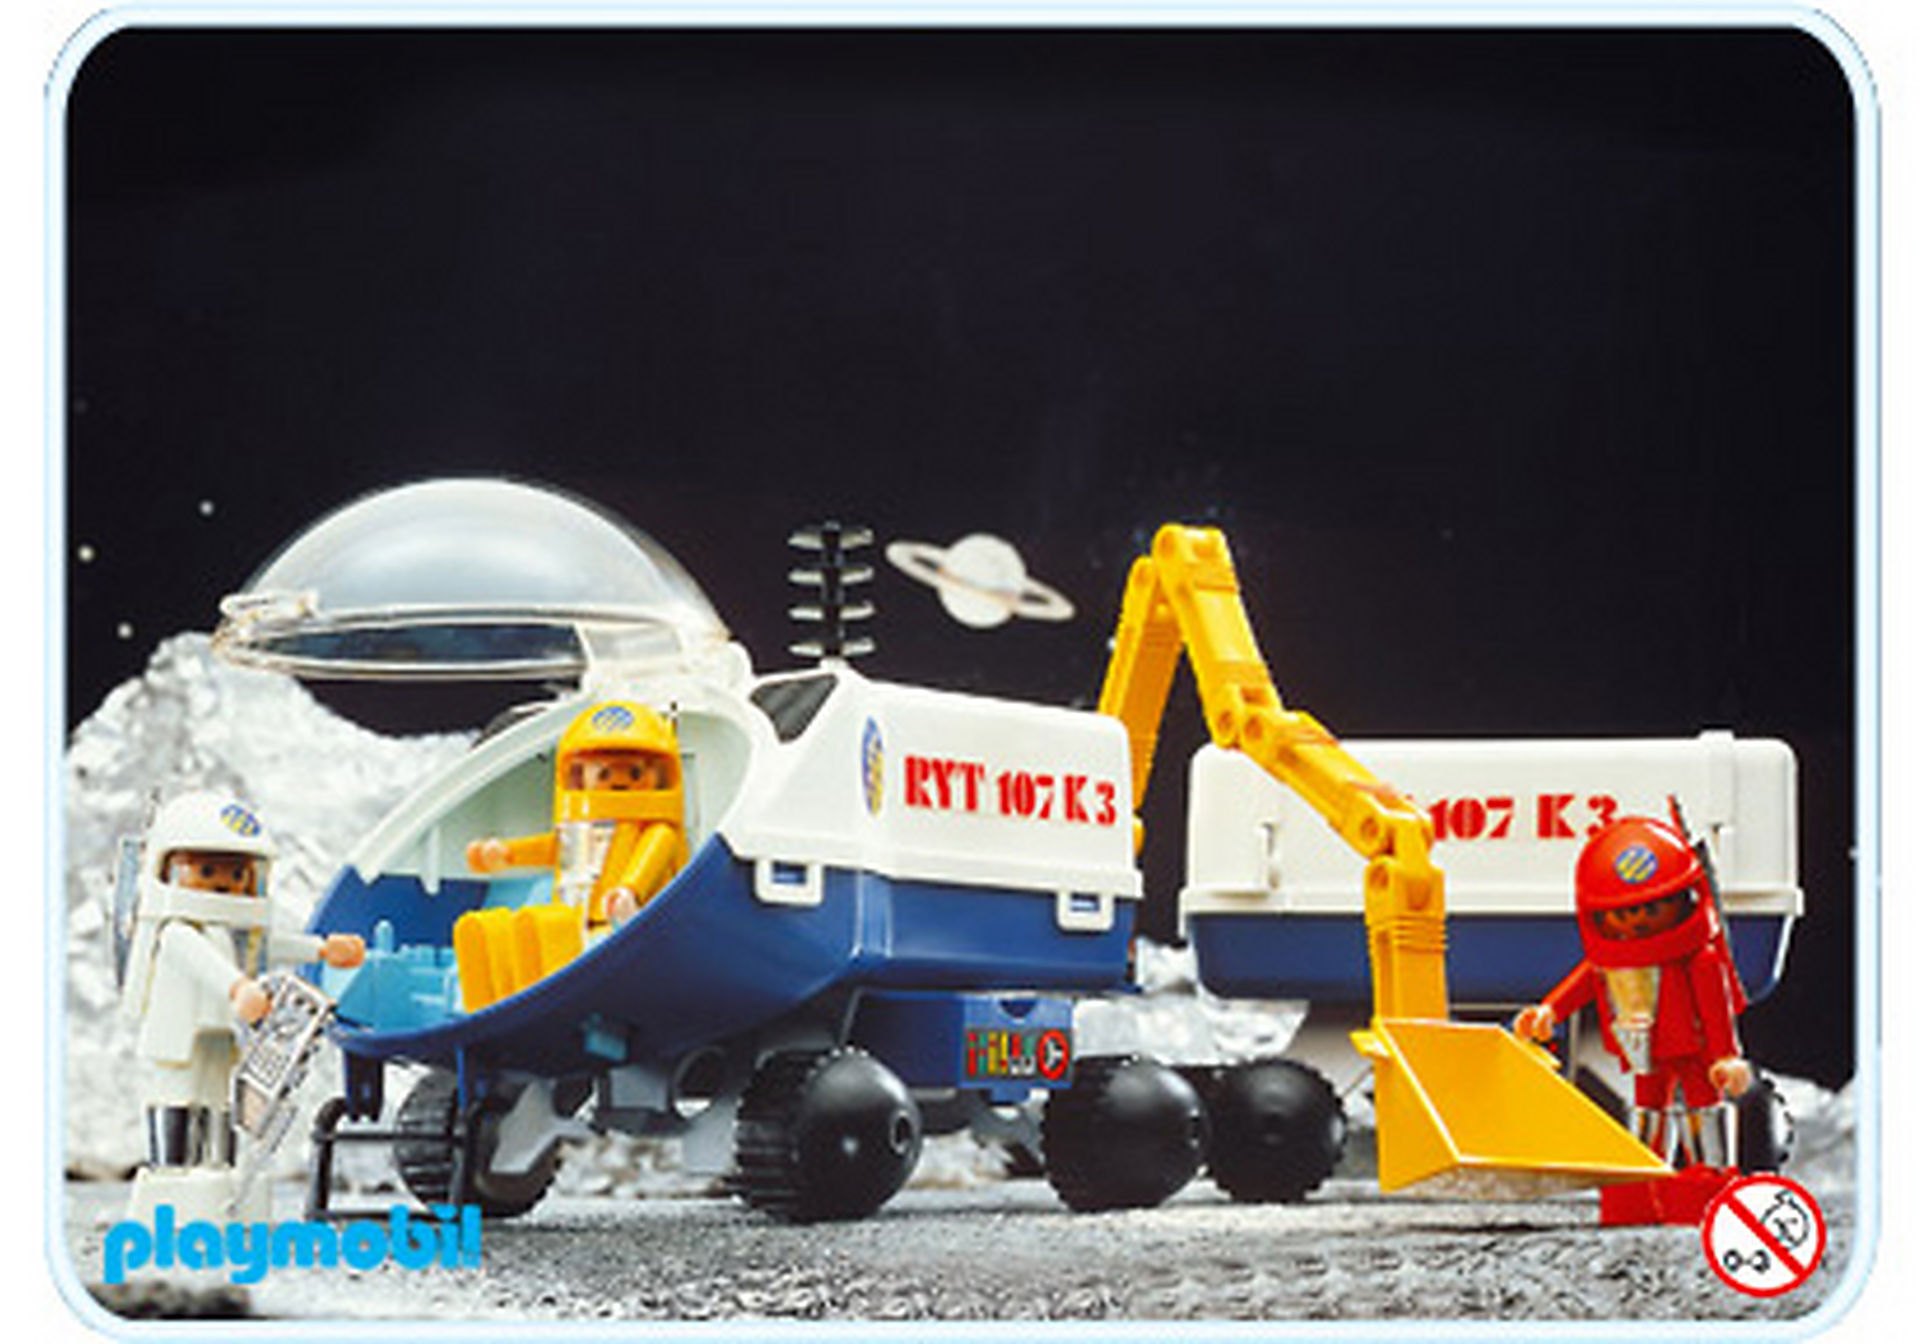 http://media.playmobil.com/i/playmobil/3559-A_product_detail/Véhicule spatiale et remorque